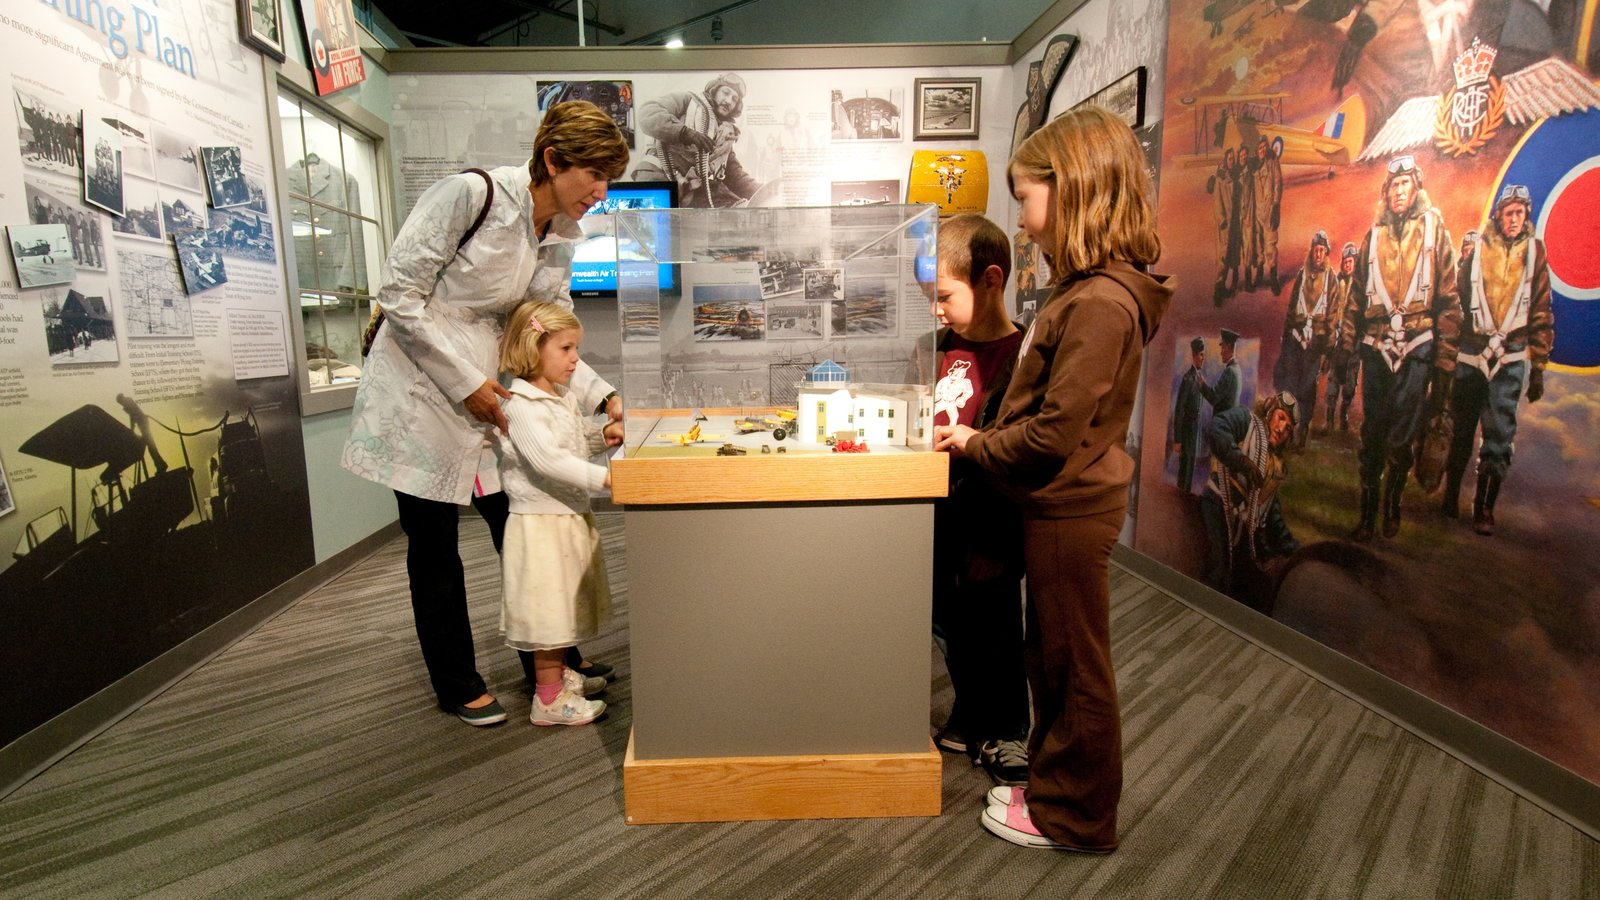 The Military Museums which includes interior views as well as children